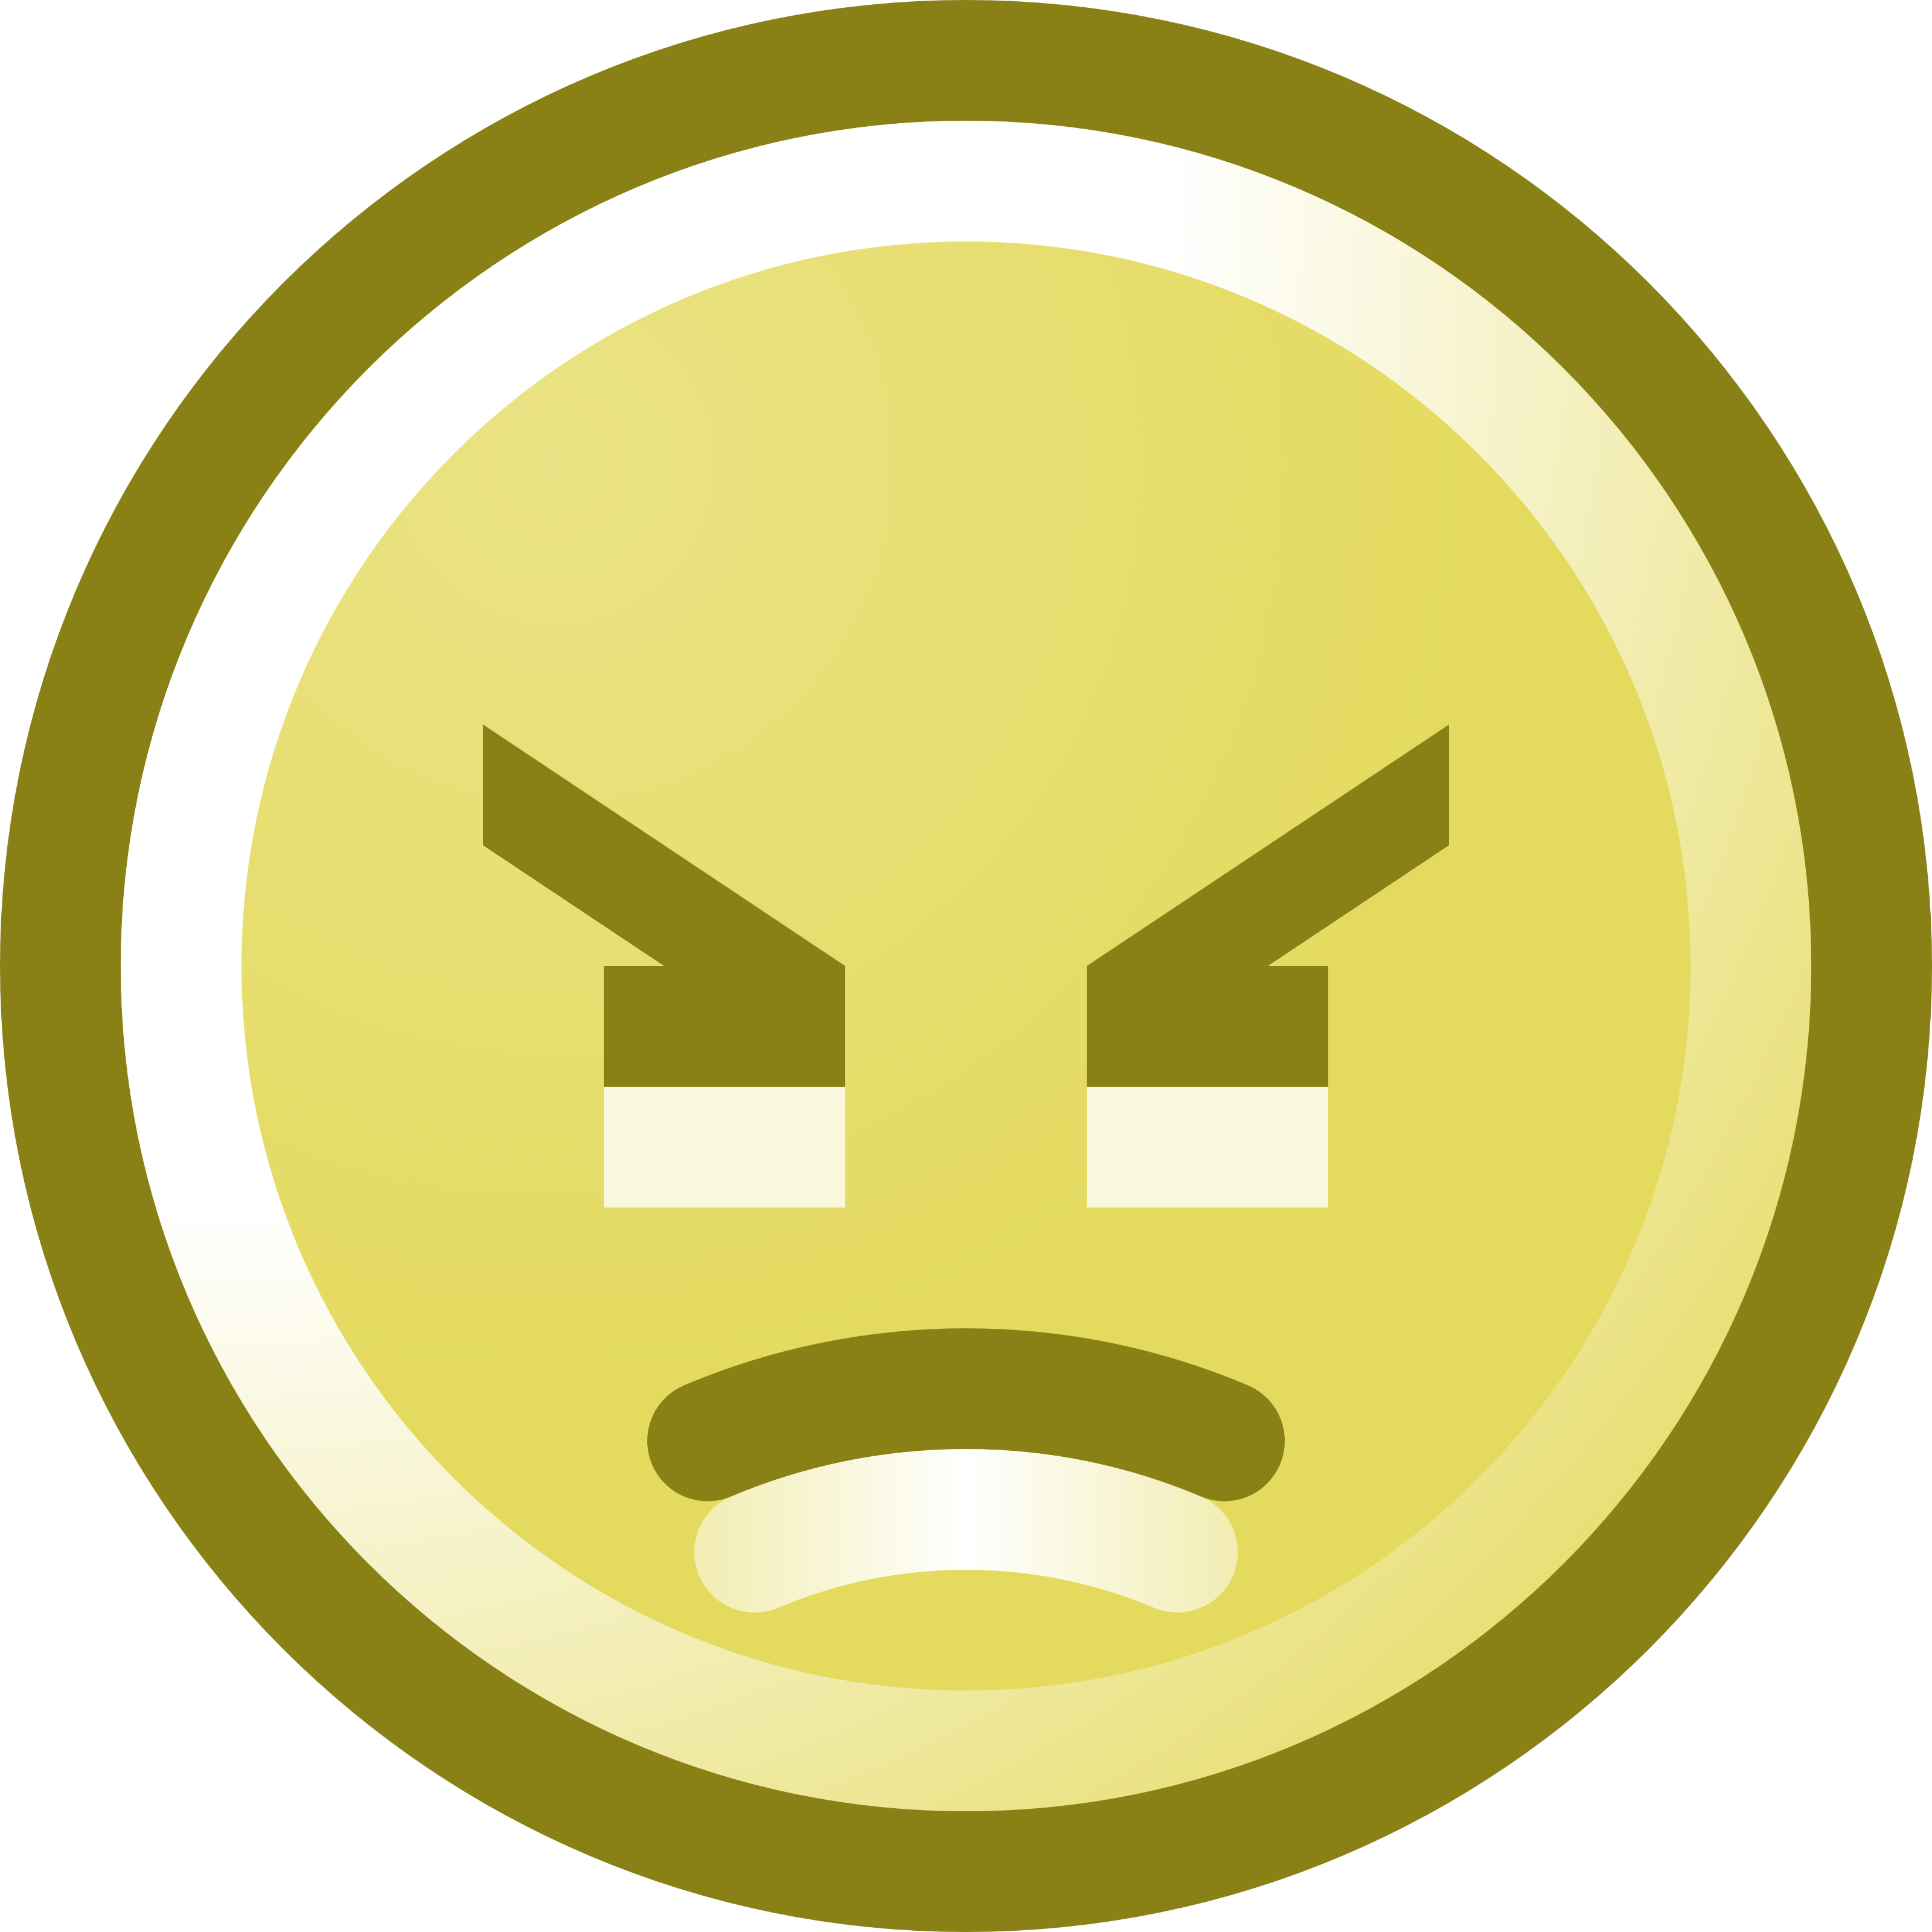 Smileys clipart upset Smiley clipart Face Angry art